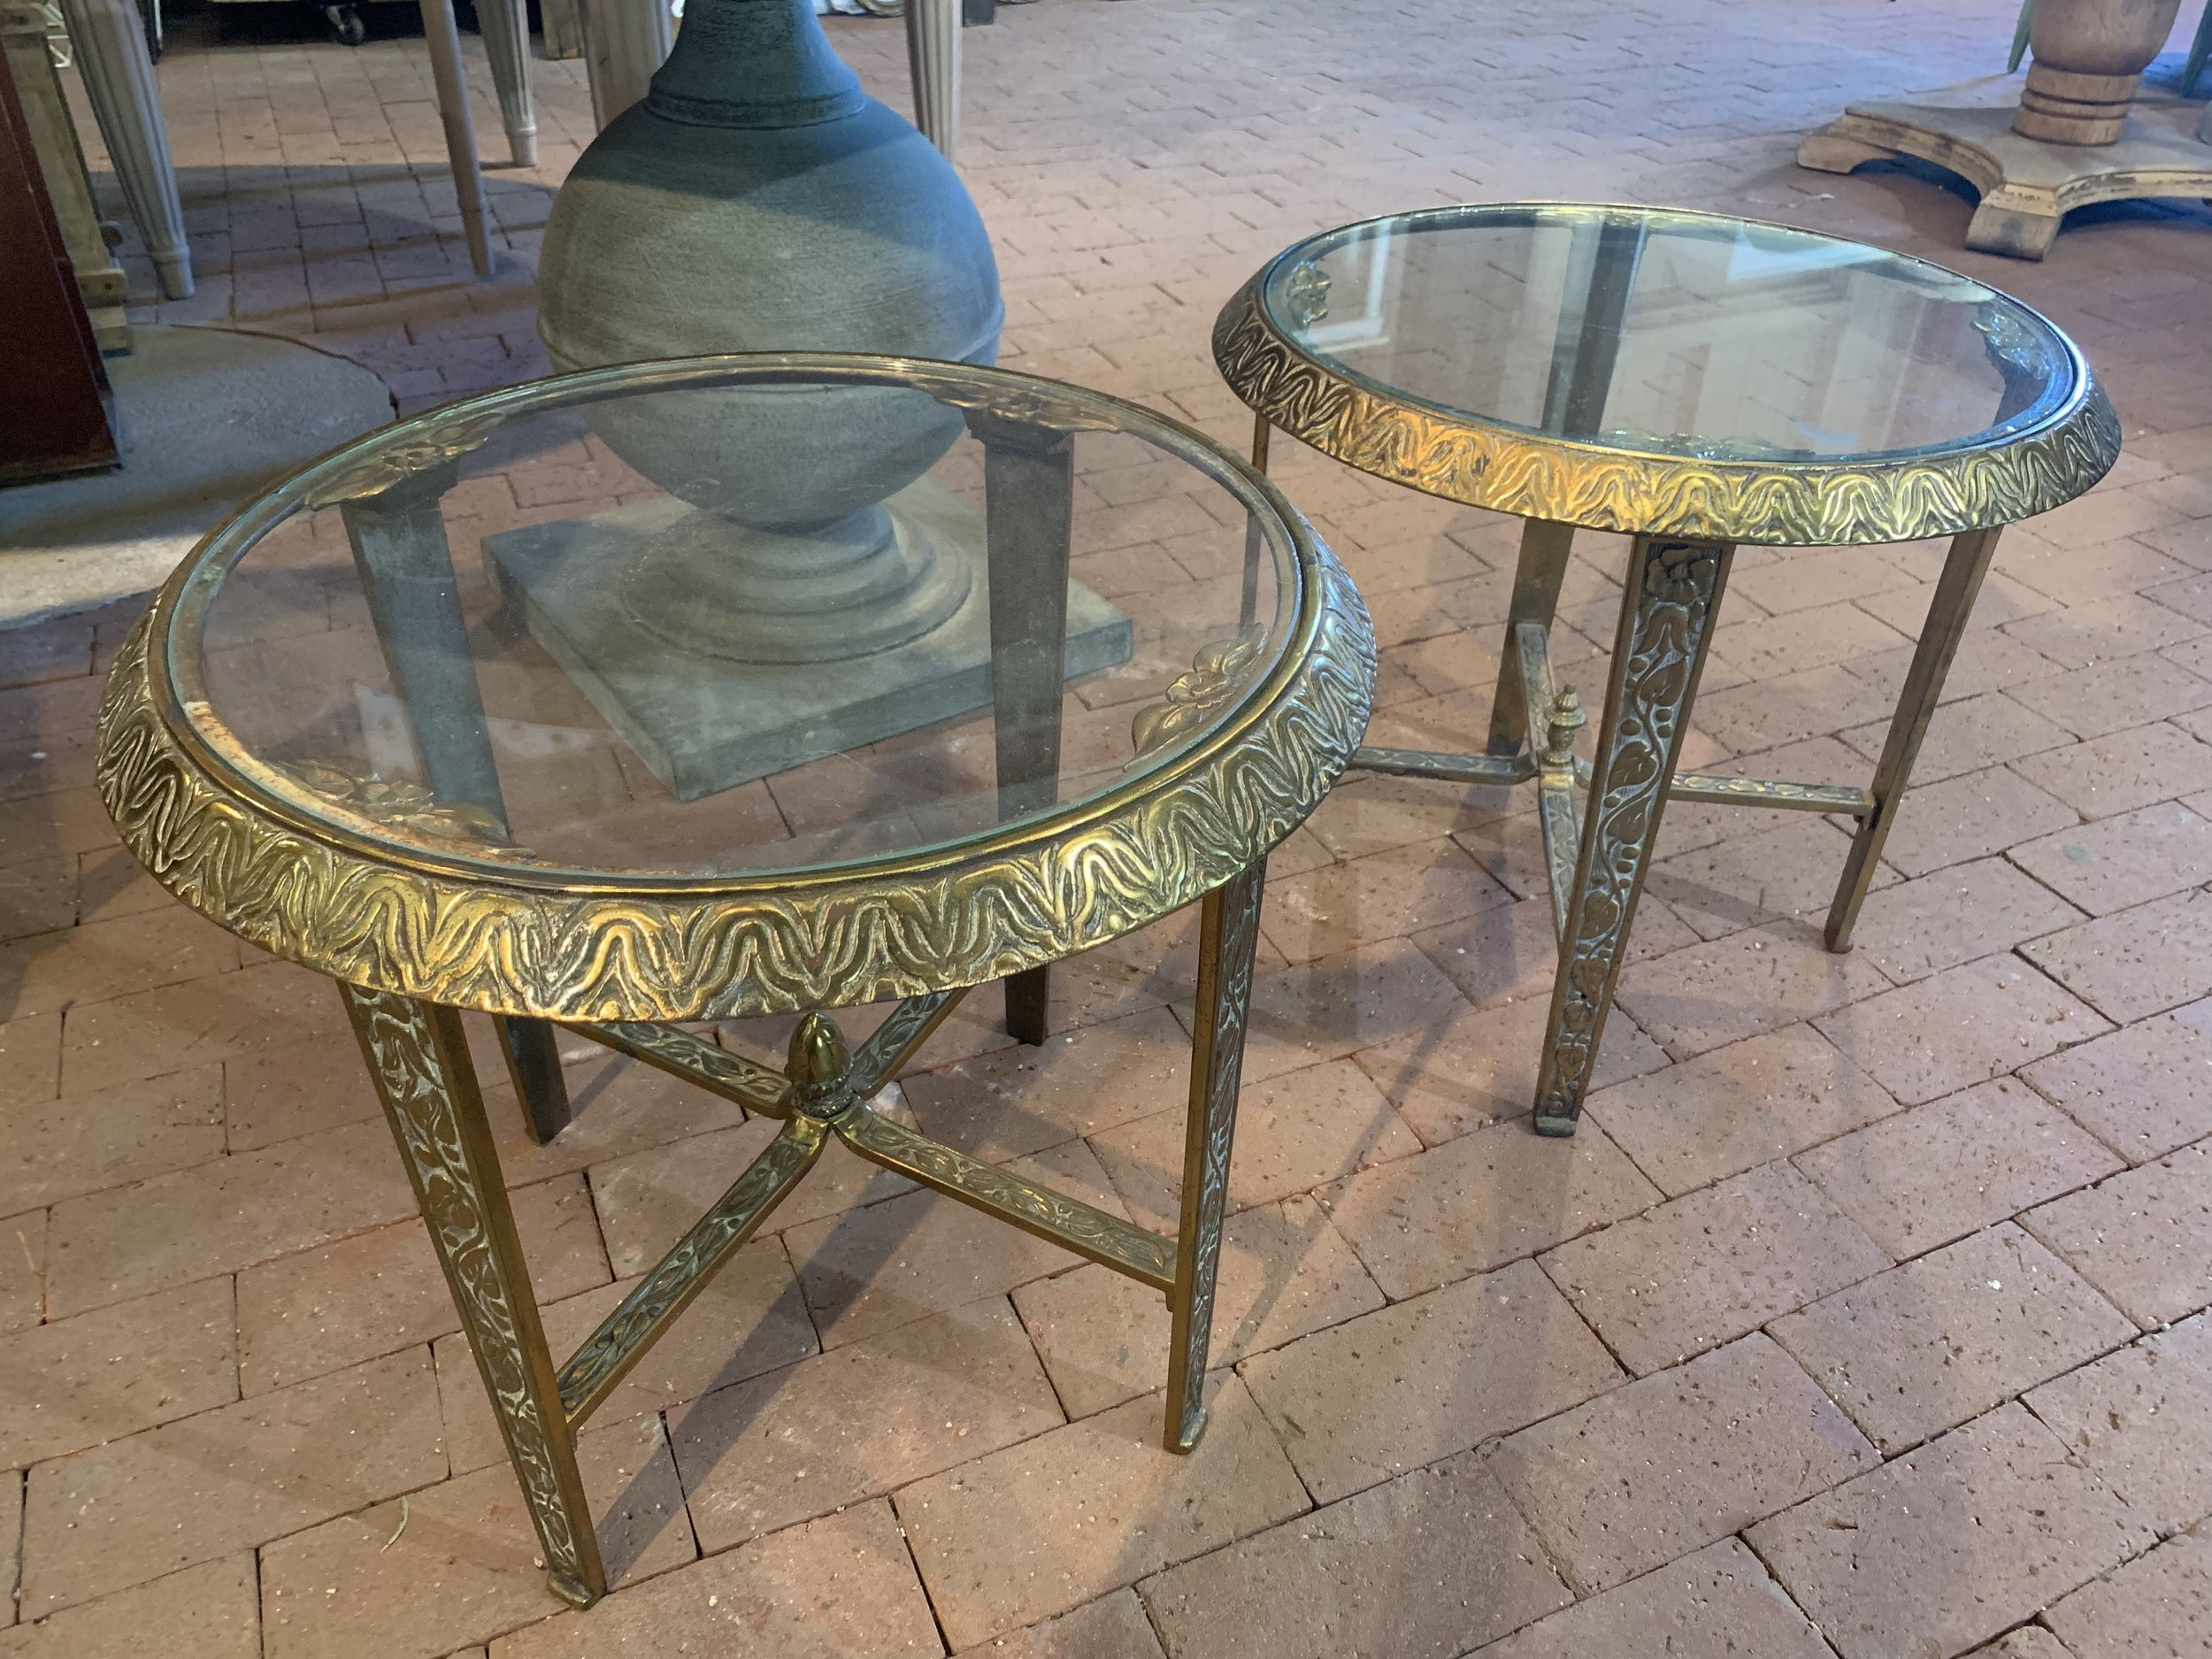 ROUND BRONZE ACCENT TABLE (set of 2) - $55